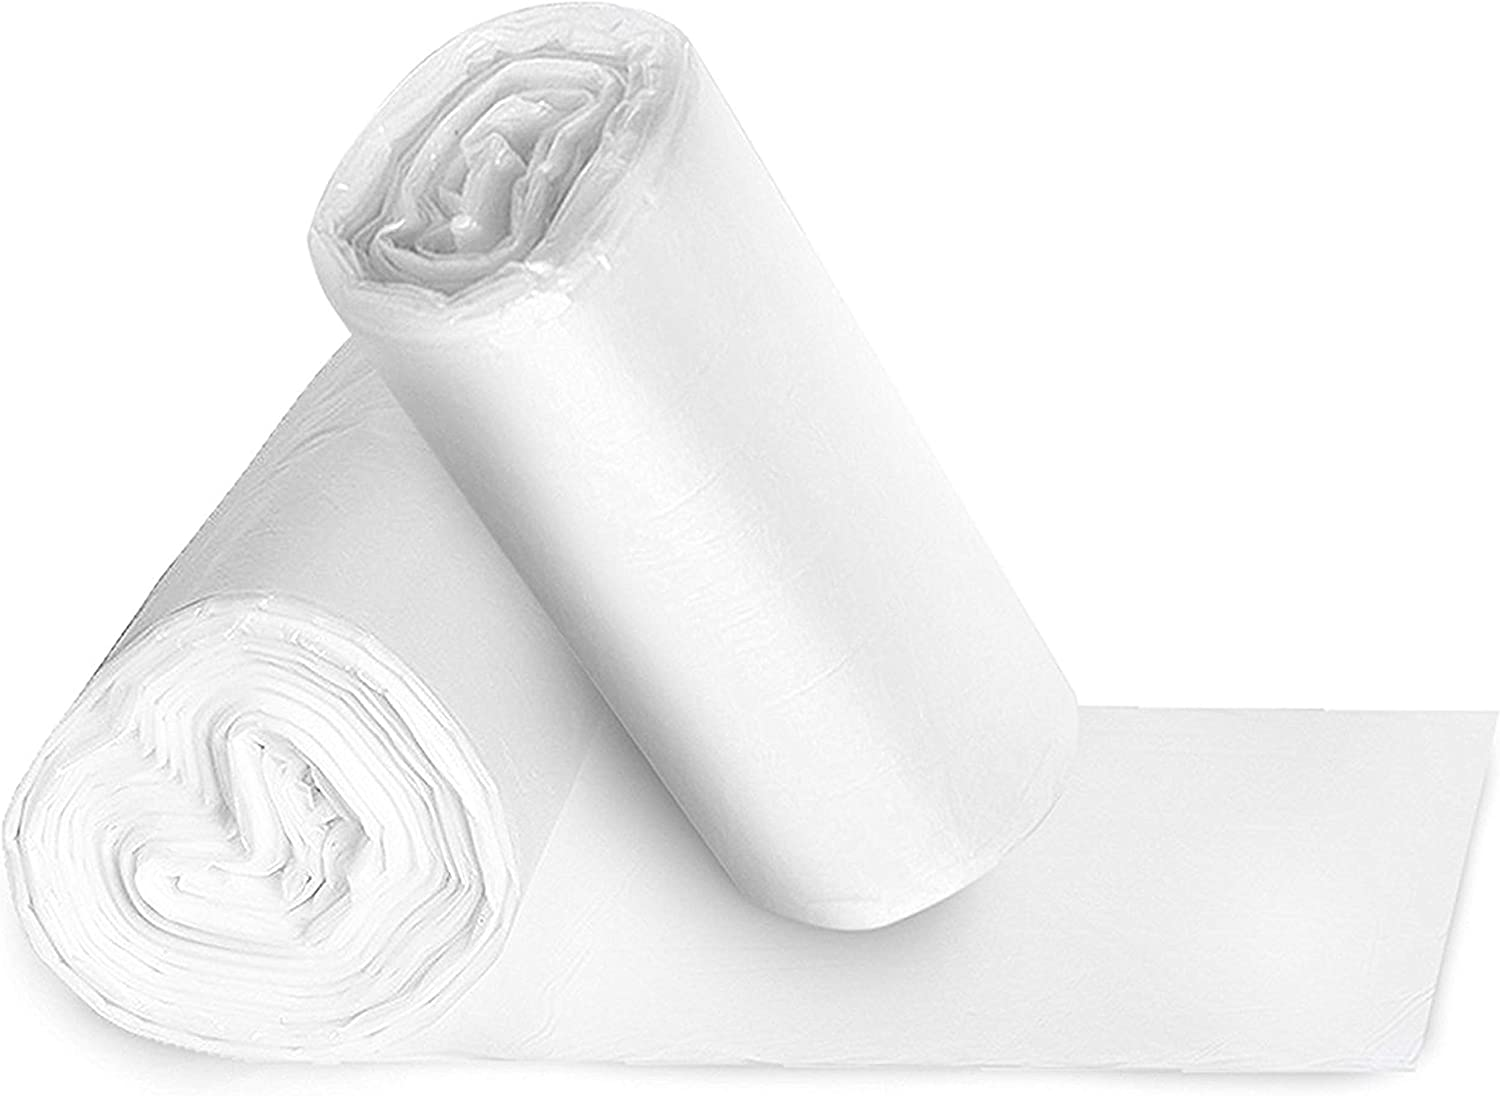 10 Gallon Trash Garbage Bags Can Liners 100 PK